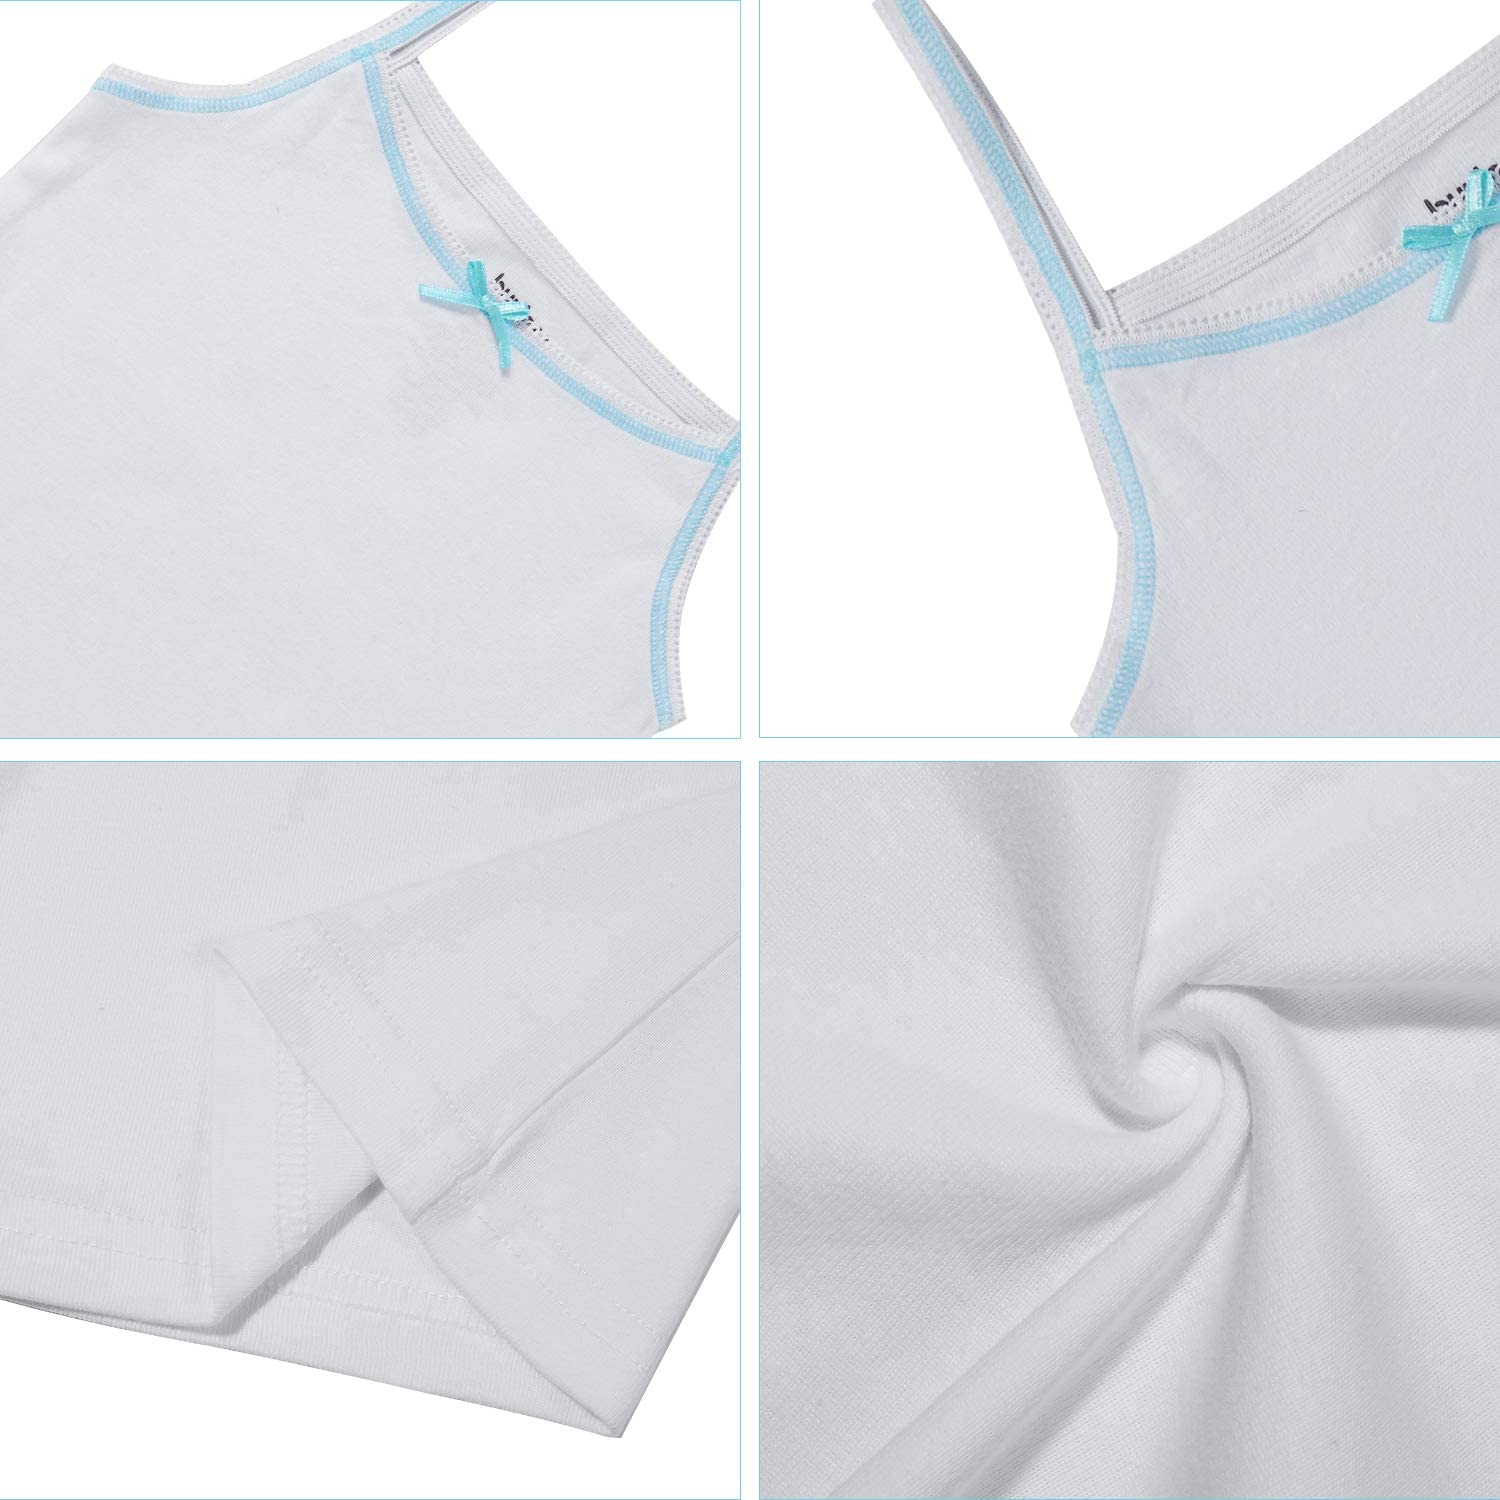 Buyless Fashion Girls Tagless Cami Scoop Neck Undershirts Cotton Tank with Trim and Strap 8 Pack